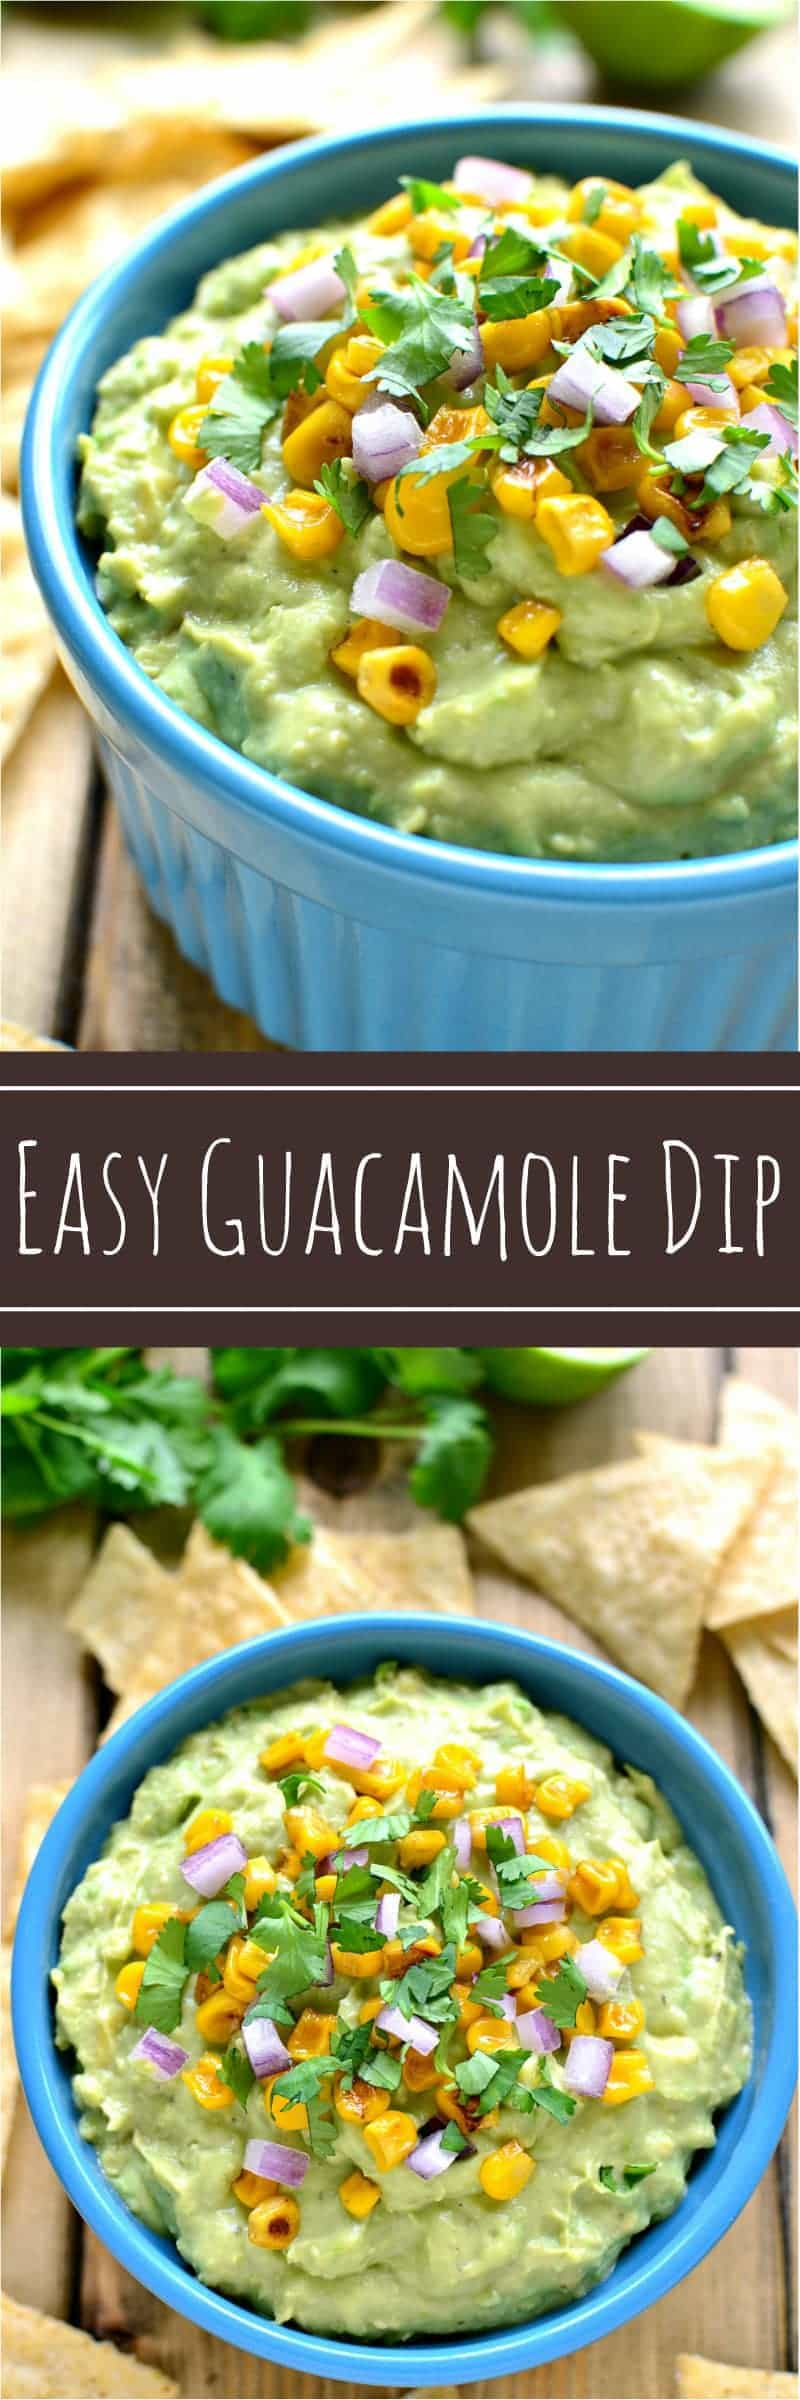 This Easy Guacamole Dip comes together two ingredients! Add your favorite garnishes to jazz it up, or serve it as is. Either way, it's guaranteed to become a quick & easy crowd favorite!